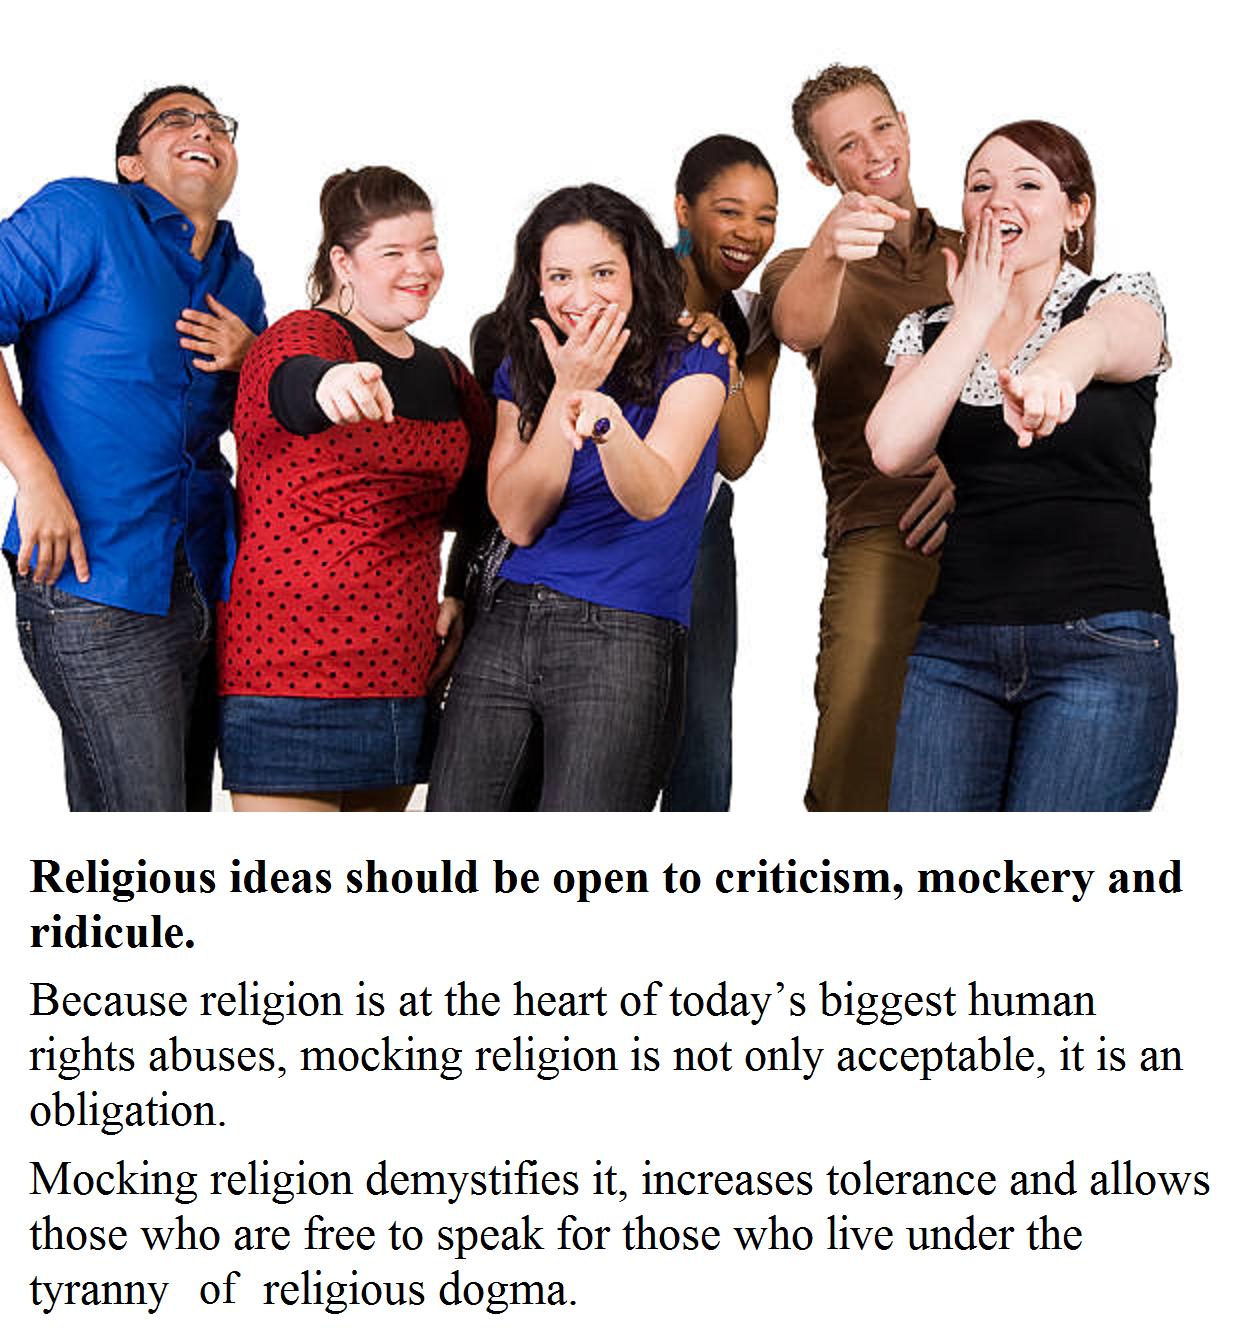 Religious ideas should be open to criticism, mockery and ridicule. Because religion is at the heart of today's biggest human rights abuses, mocking religion is not only acceptable, it is an obligation. Mocking religion demystifies it, increases tolerance and allows those who are free to speak for those who live under the tyranny of religious dogma. Making fun of religion also encourages its disassociation from politics. Not Mocking Religion Is an Assault on Free Speech.